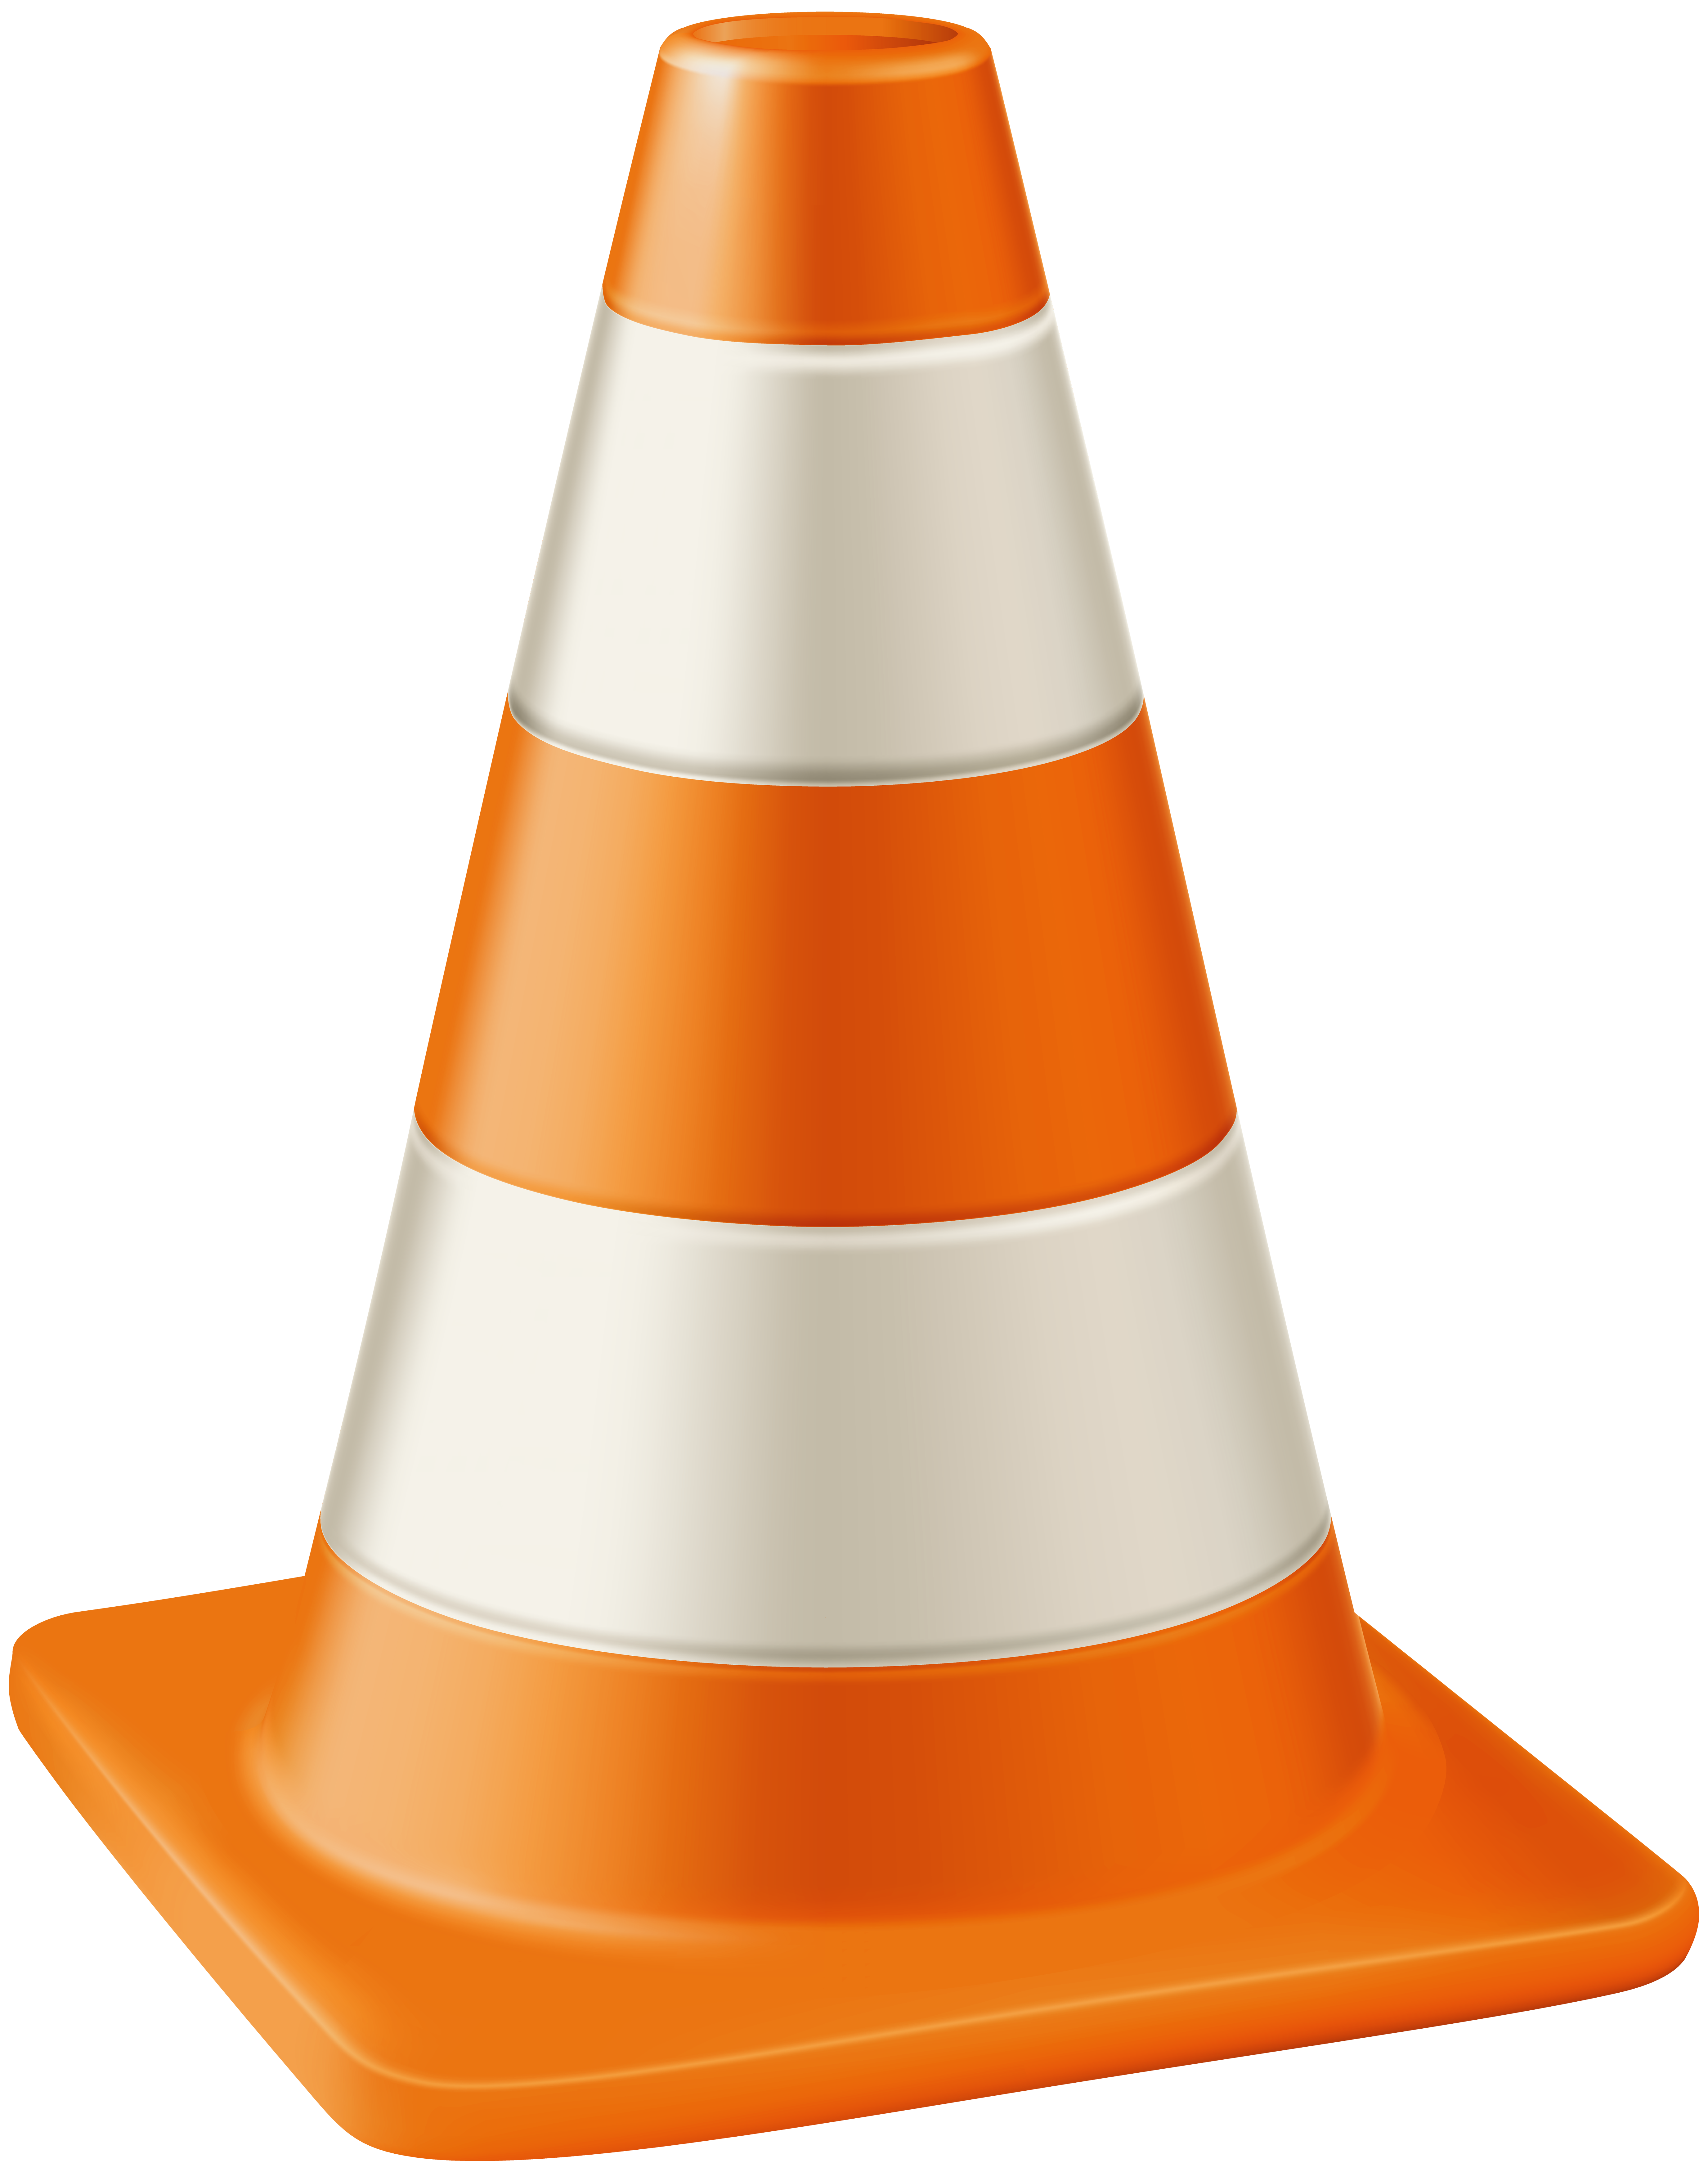 vector black and white download Cone clipart. Traffic transparent png clip.